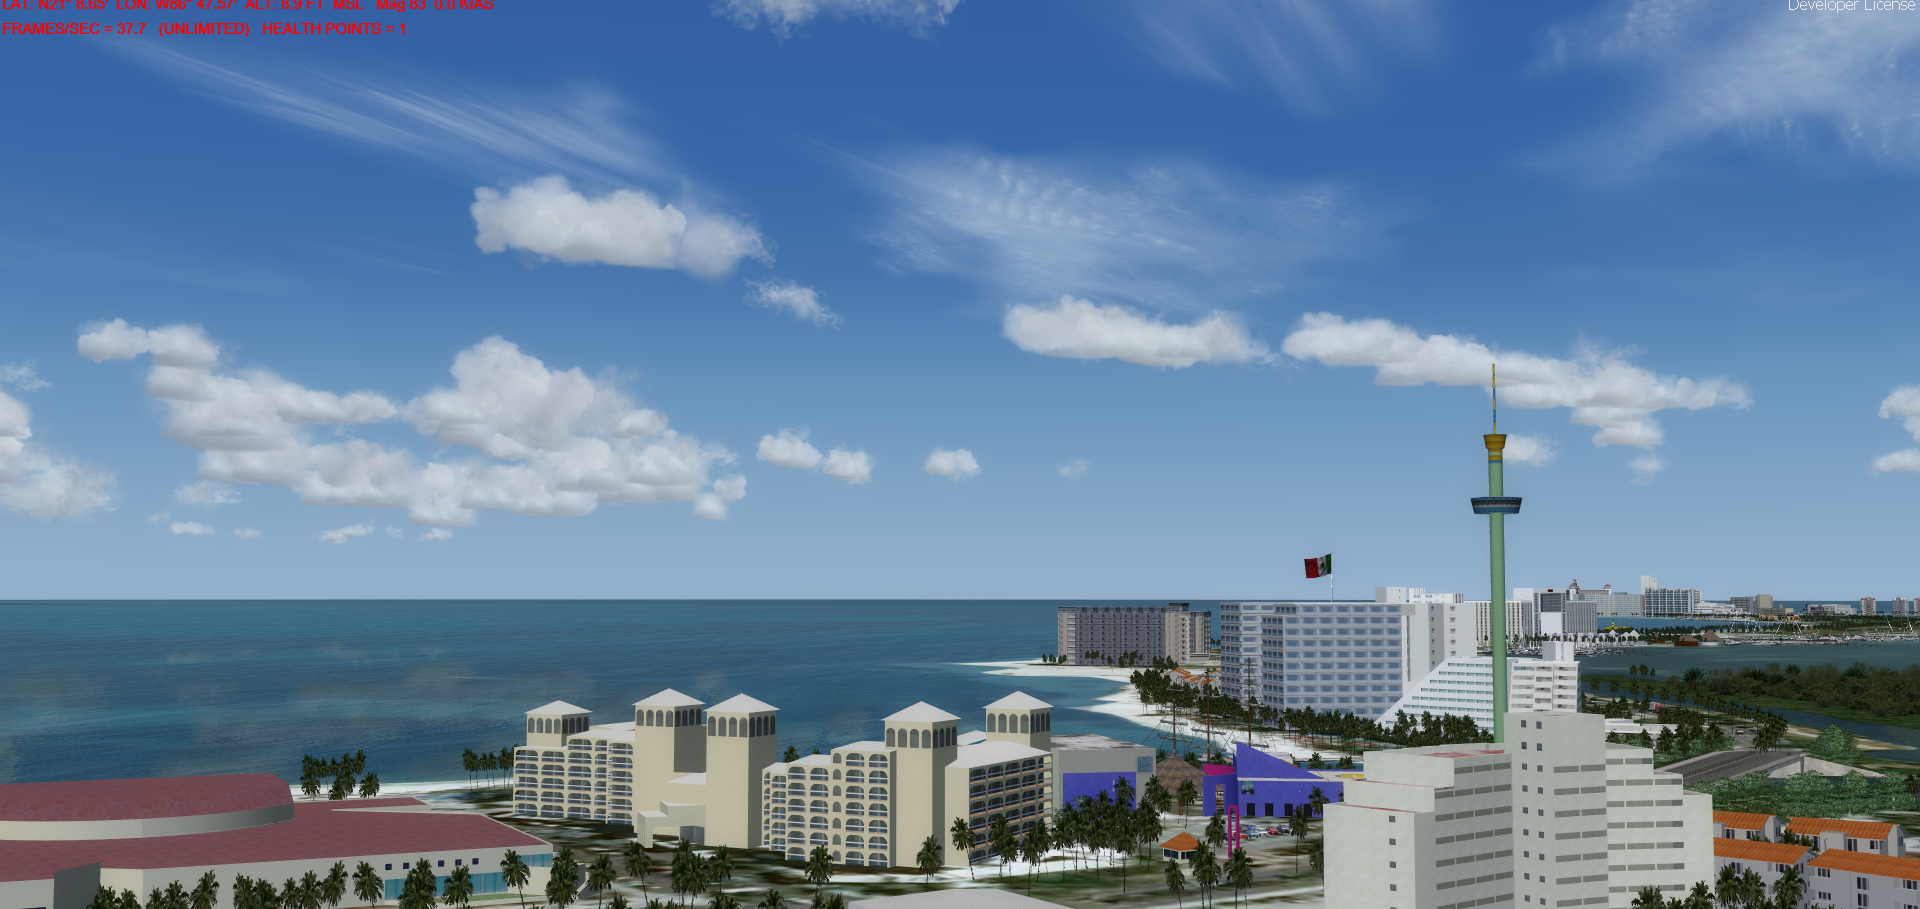 KINGS SCENERIES - CANCUN RIVIERA MAYA AND CHICHEN-ITZA 2.0 P3D4